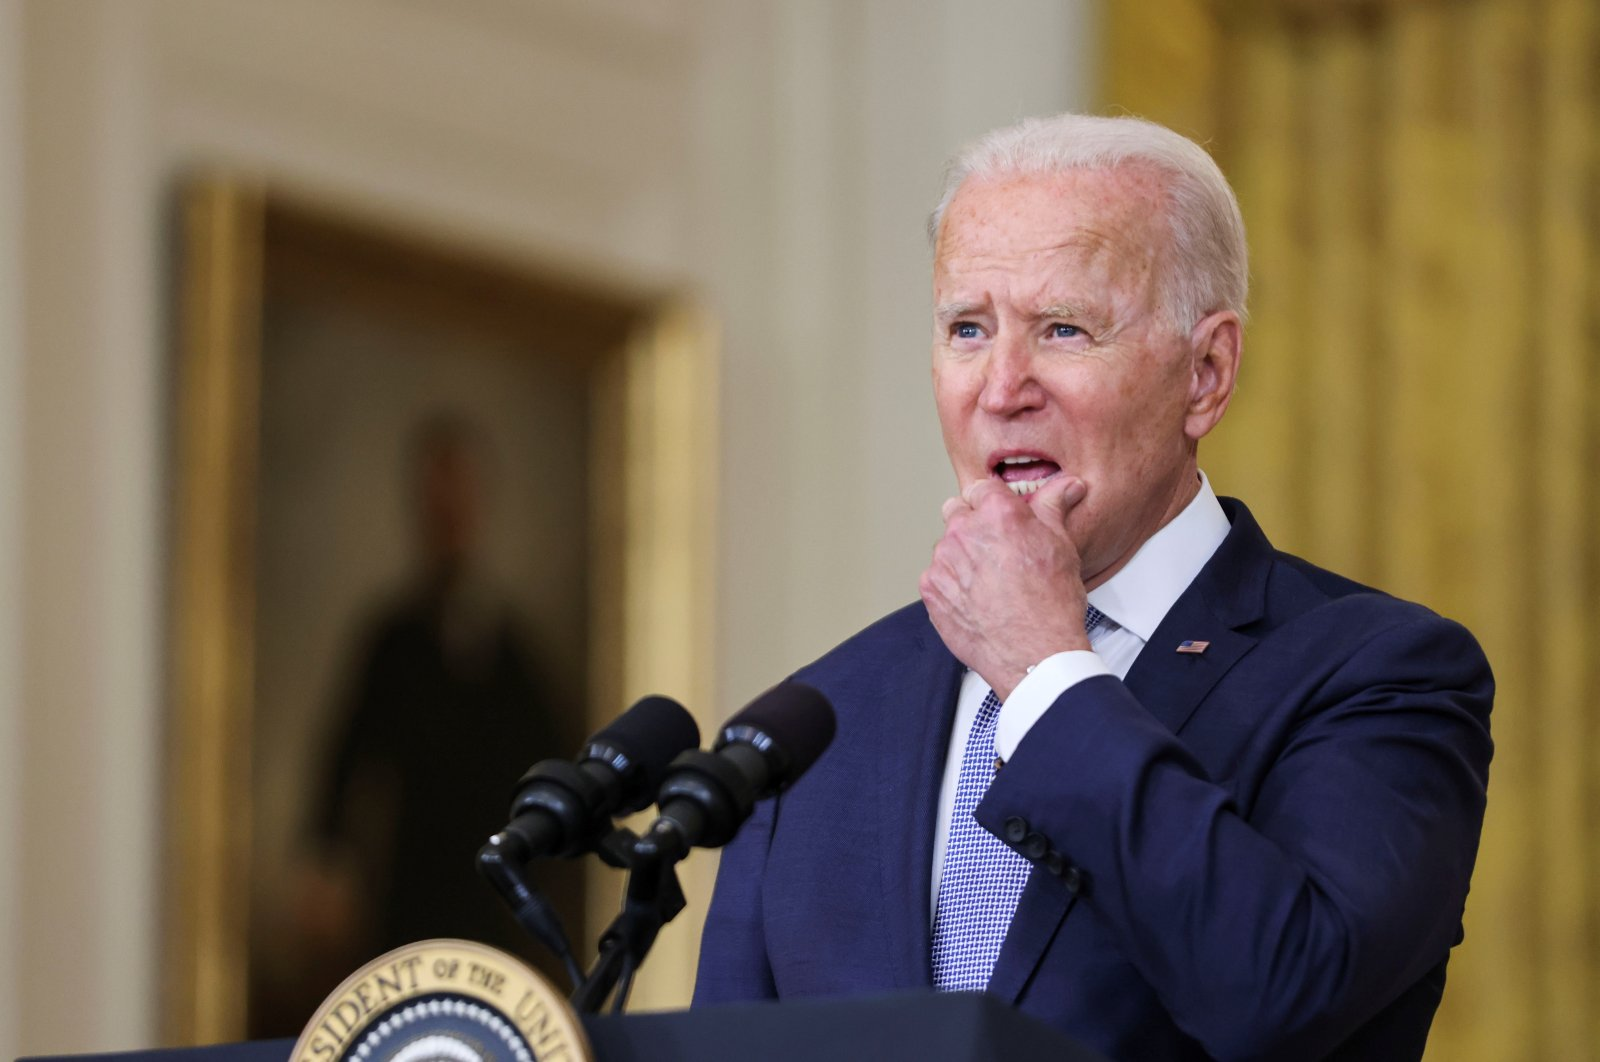 """U.S. President Joe Biden discusses his 'Build Back Better' agenda and administration efforts to """"lower prescription drug prices,"""" in the East Room at the White House in Washington D.C., U.S., Aug. 12, 2021. (Reuters Photo)"""